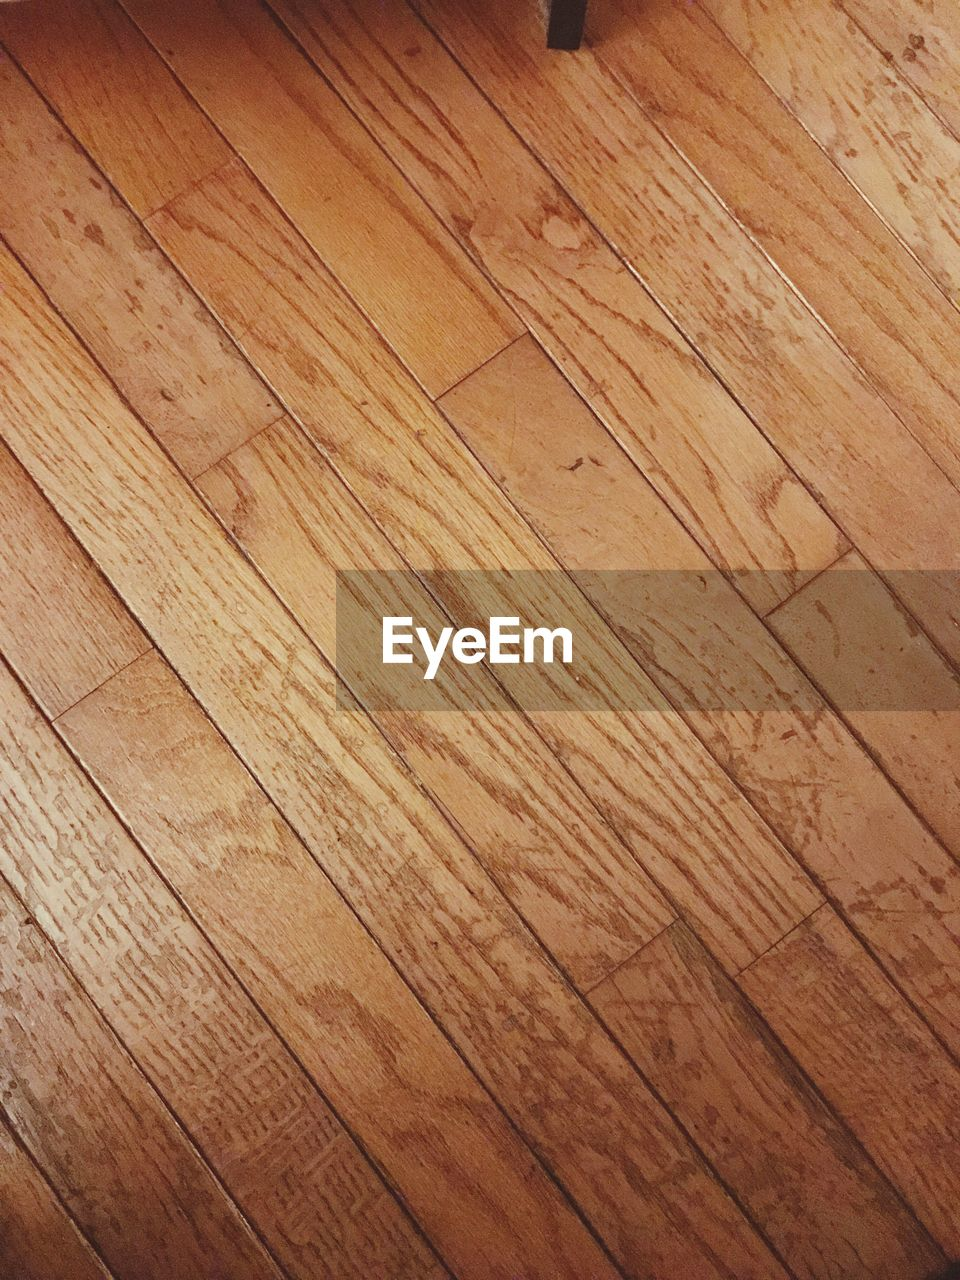 hardwood floor, wood - material, hardwood, wood grain, flooring, backgrounds, pattern, plank, wood paneling, brown, timber, textured, nature, indoors, knotted wood, home interior, full frame, no people, close-up